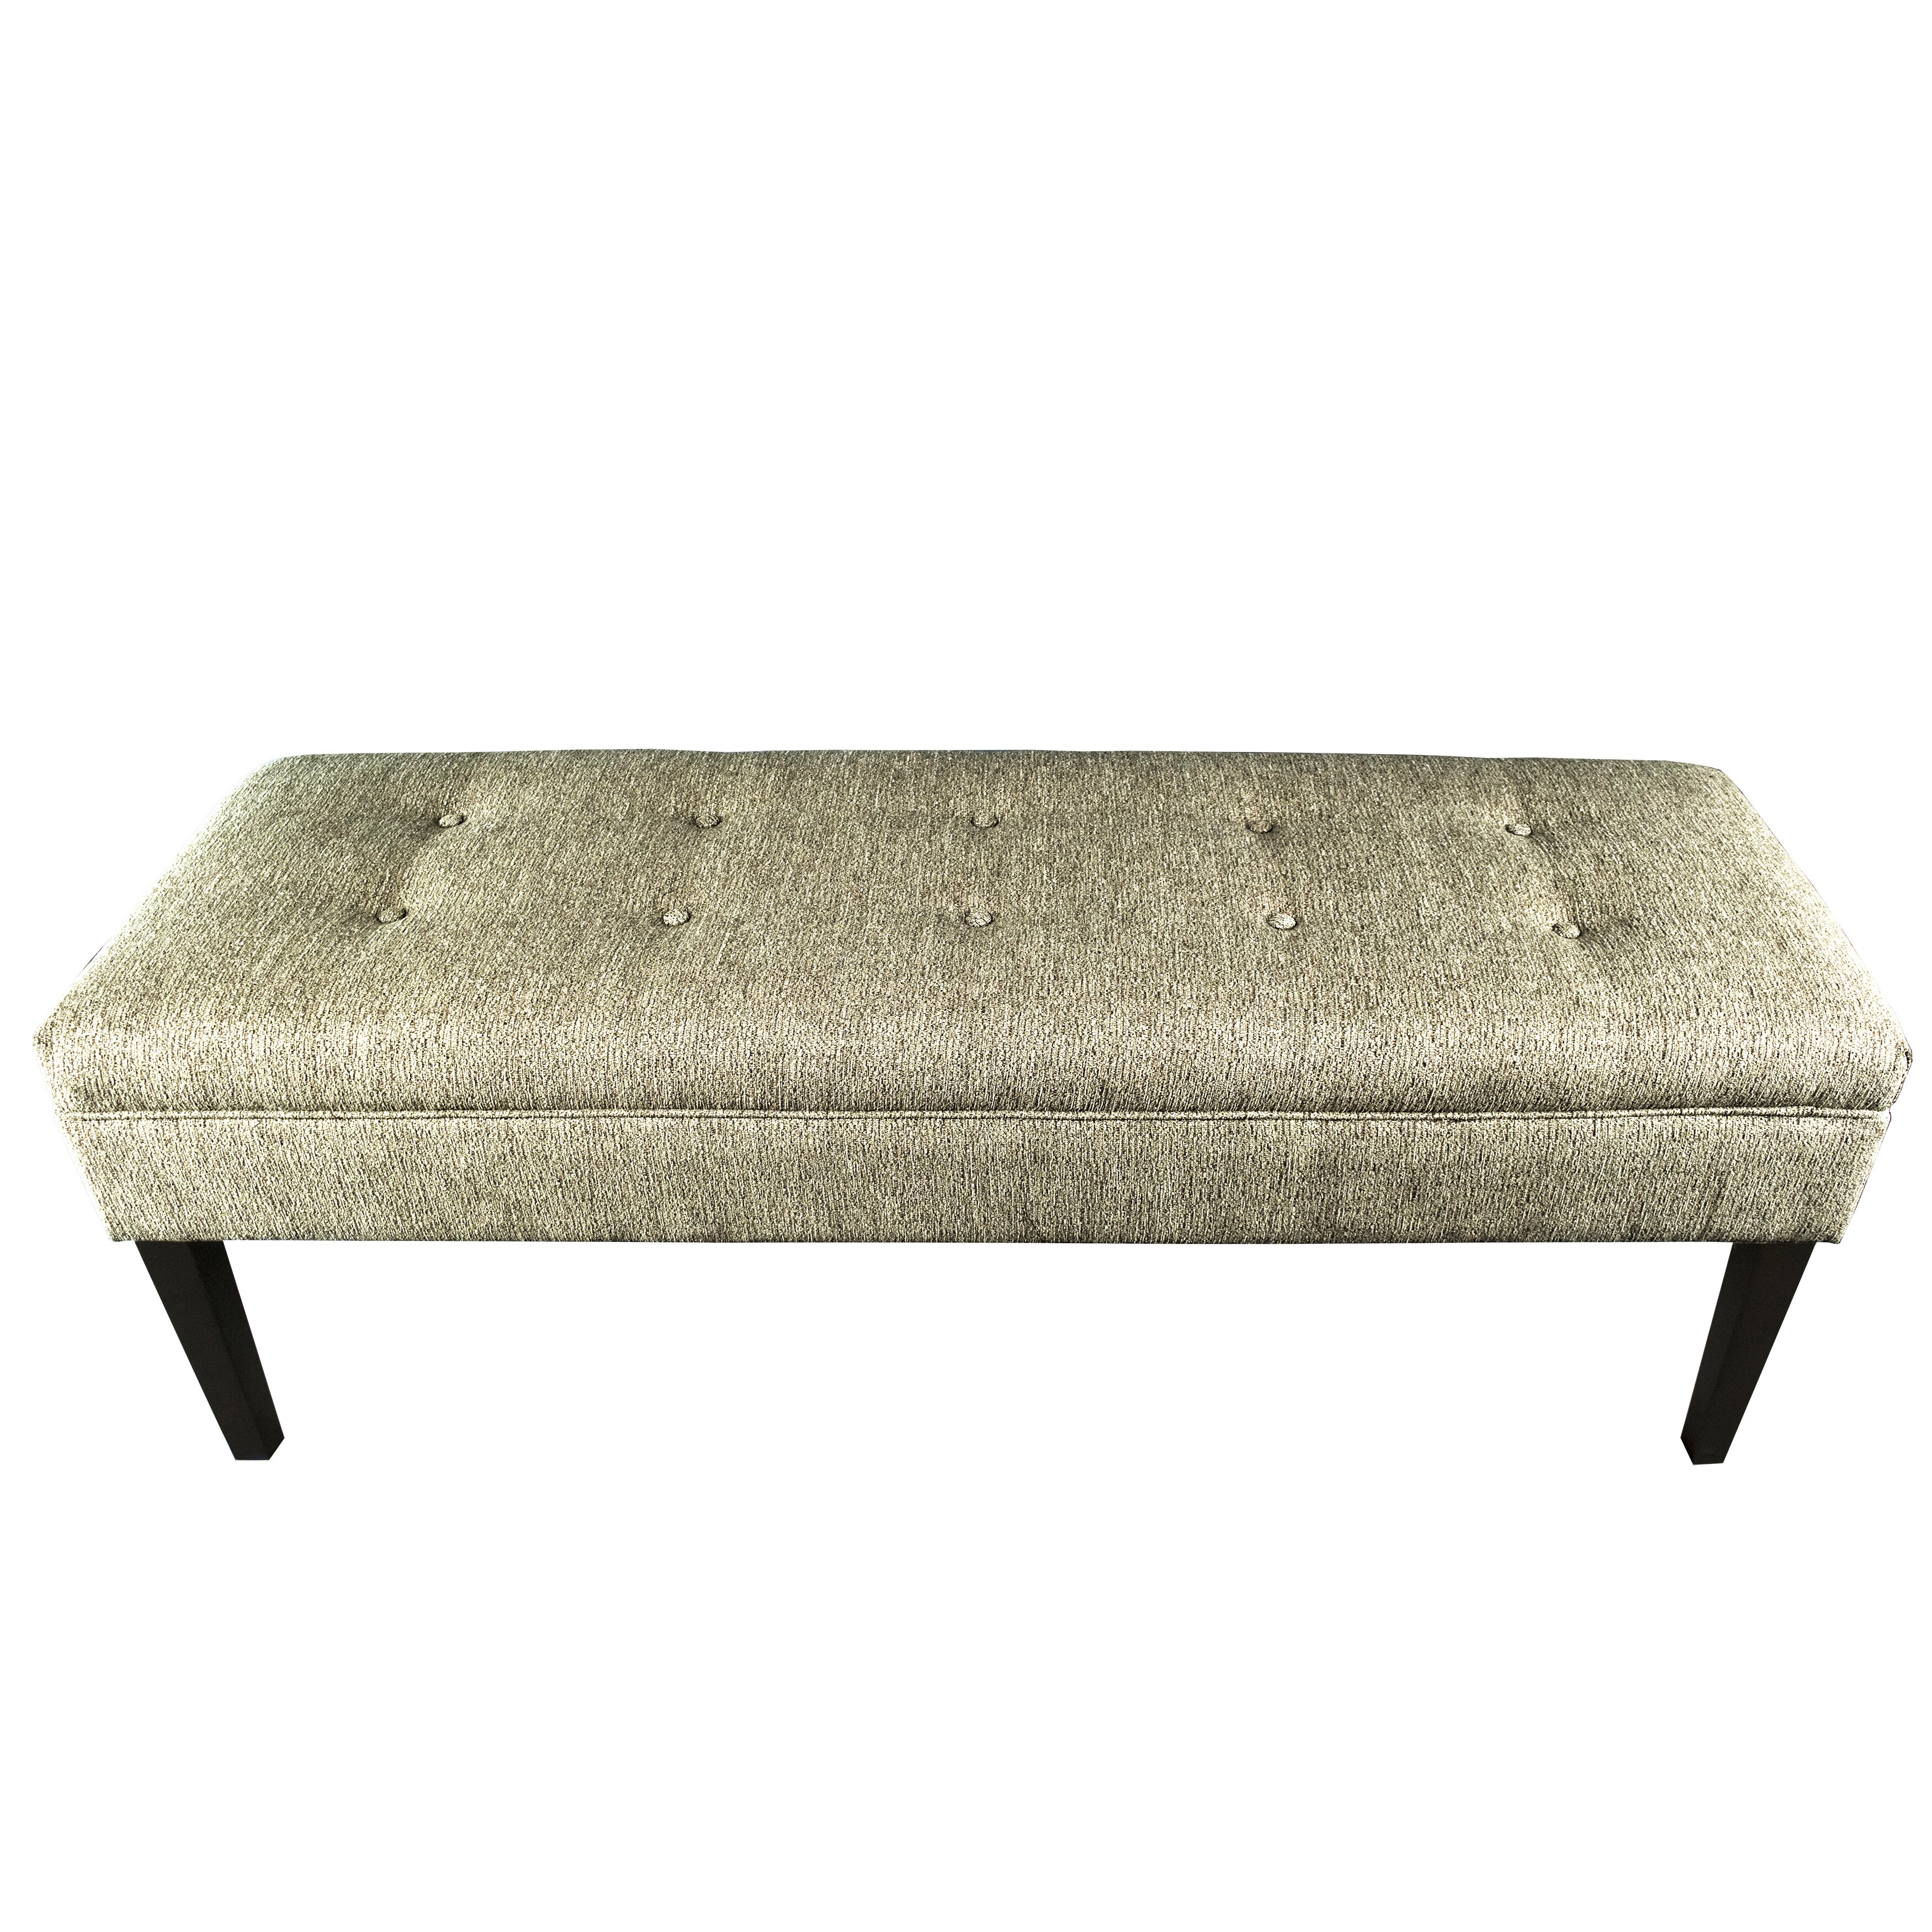 Tufted Foyer Bench : Mjlfurniture kaya button tufted entryway bench reviews